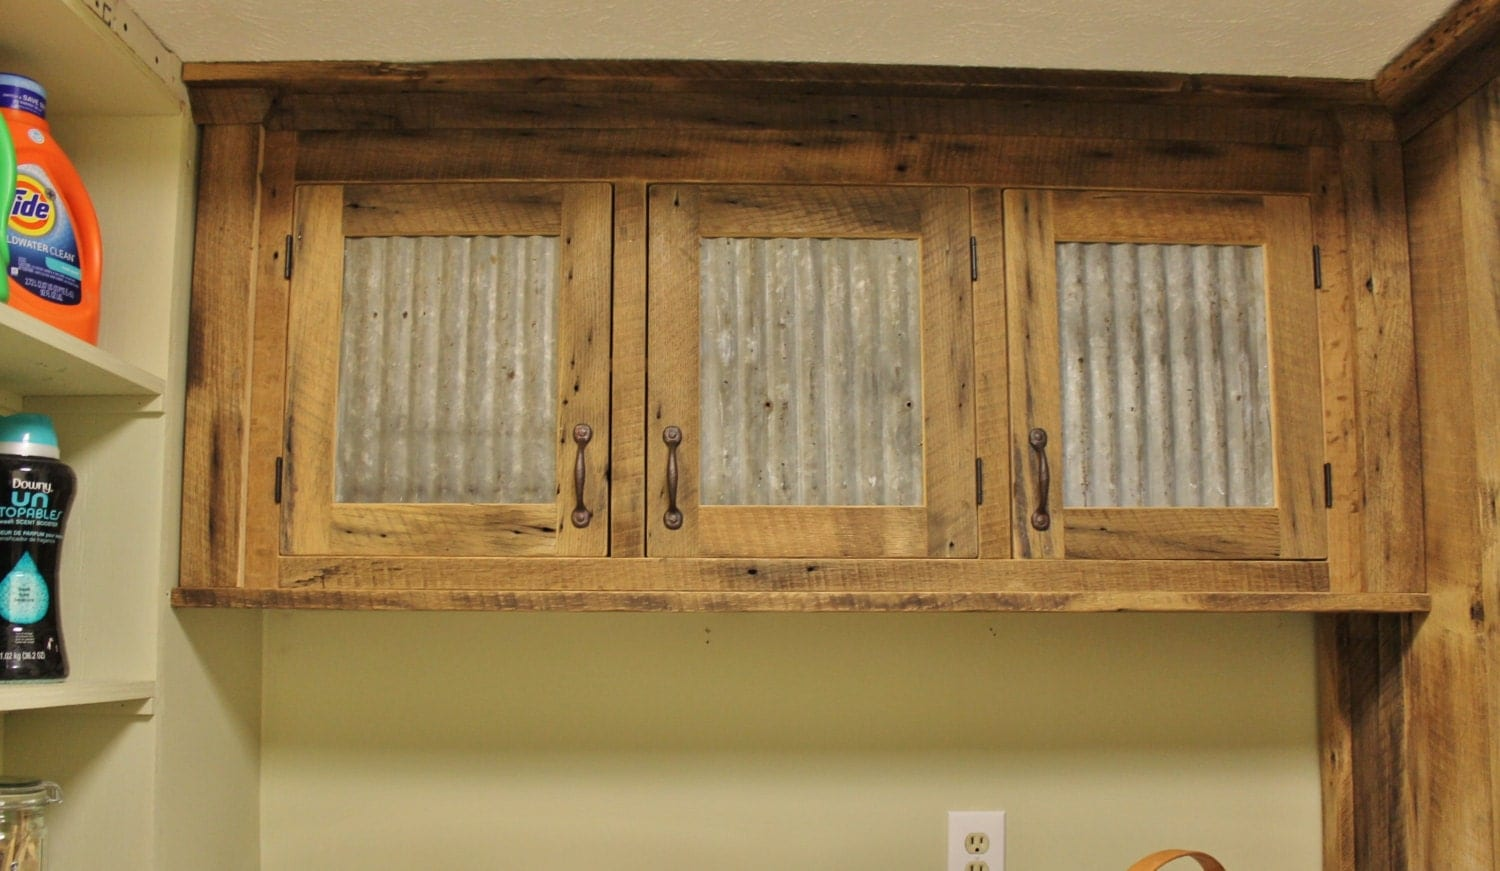 Rustic upper cabinet reclaimed barn wood w tin doors by keeriah